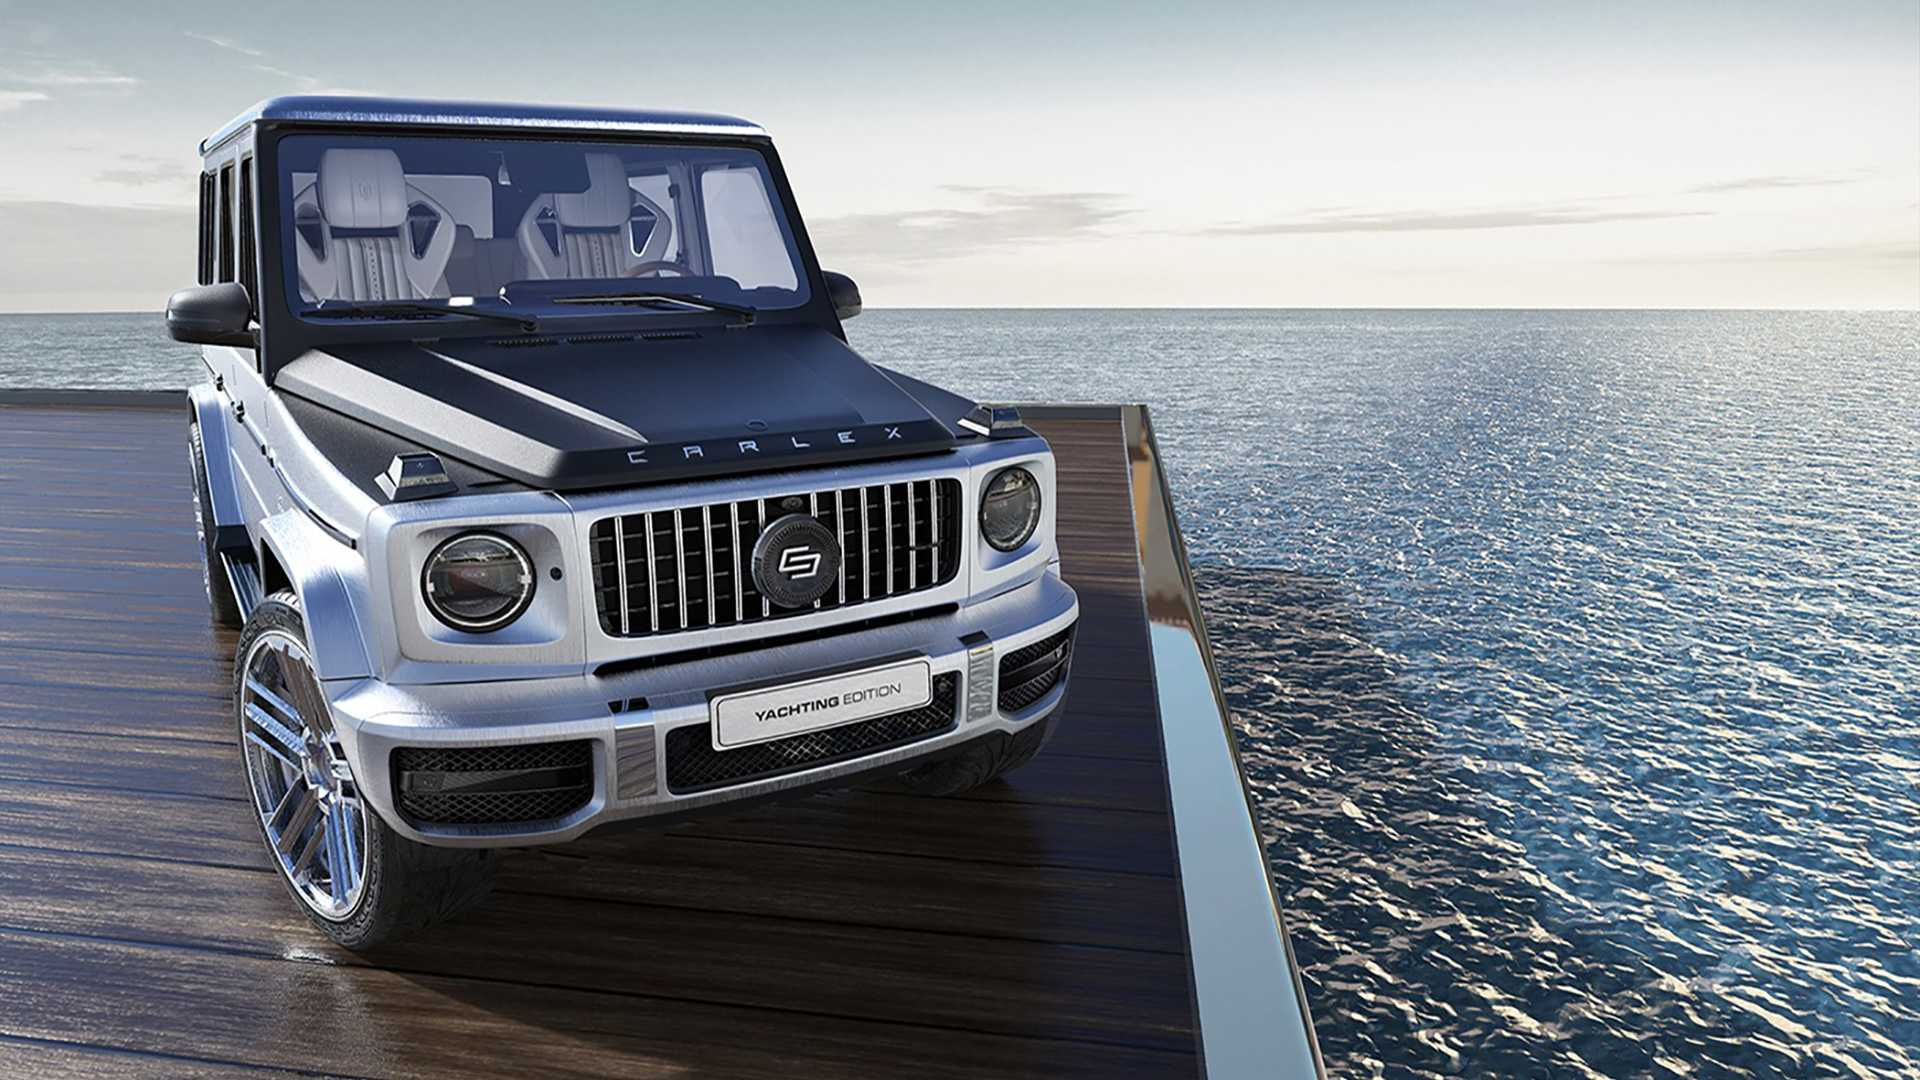 Just a couple months ago, Carlex Design unveiled the magnificent wood-and-copper-trimmed Mercedes-Benz G-Class Steampunk Edition (watch the video if you missed it). Today, the luxury interior design firm rolled out another unique SUV, stylized to resemble the finest of marine yachts.